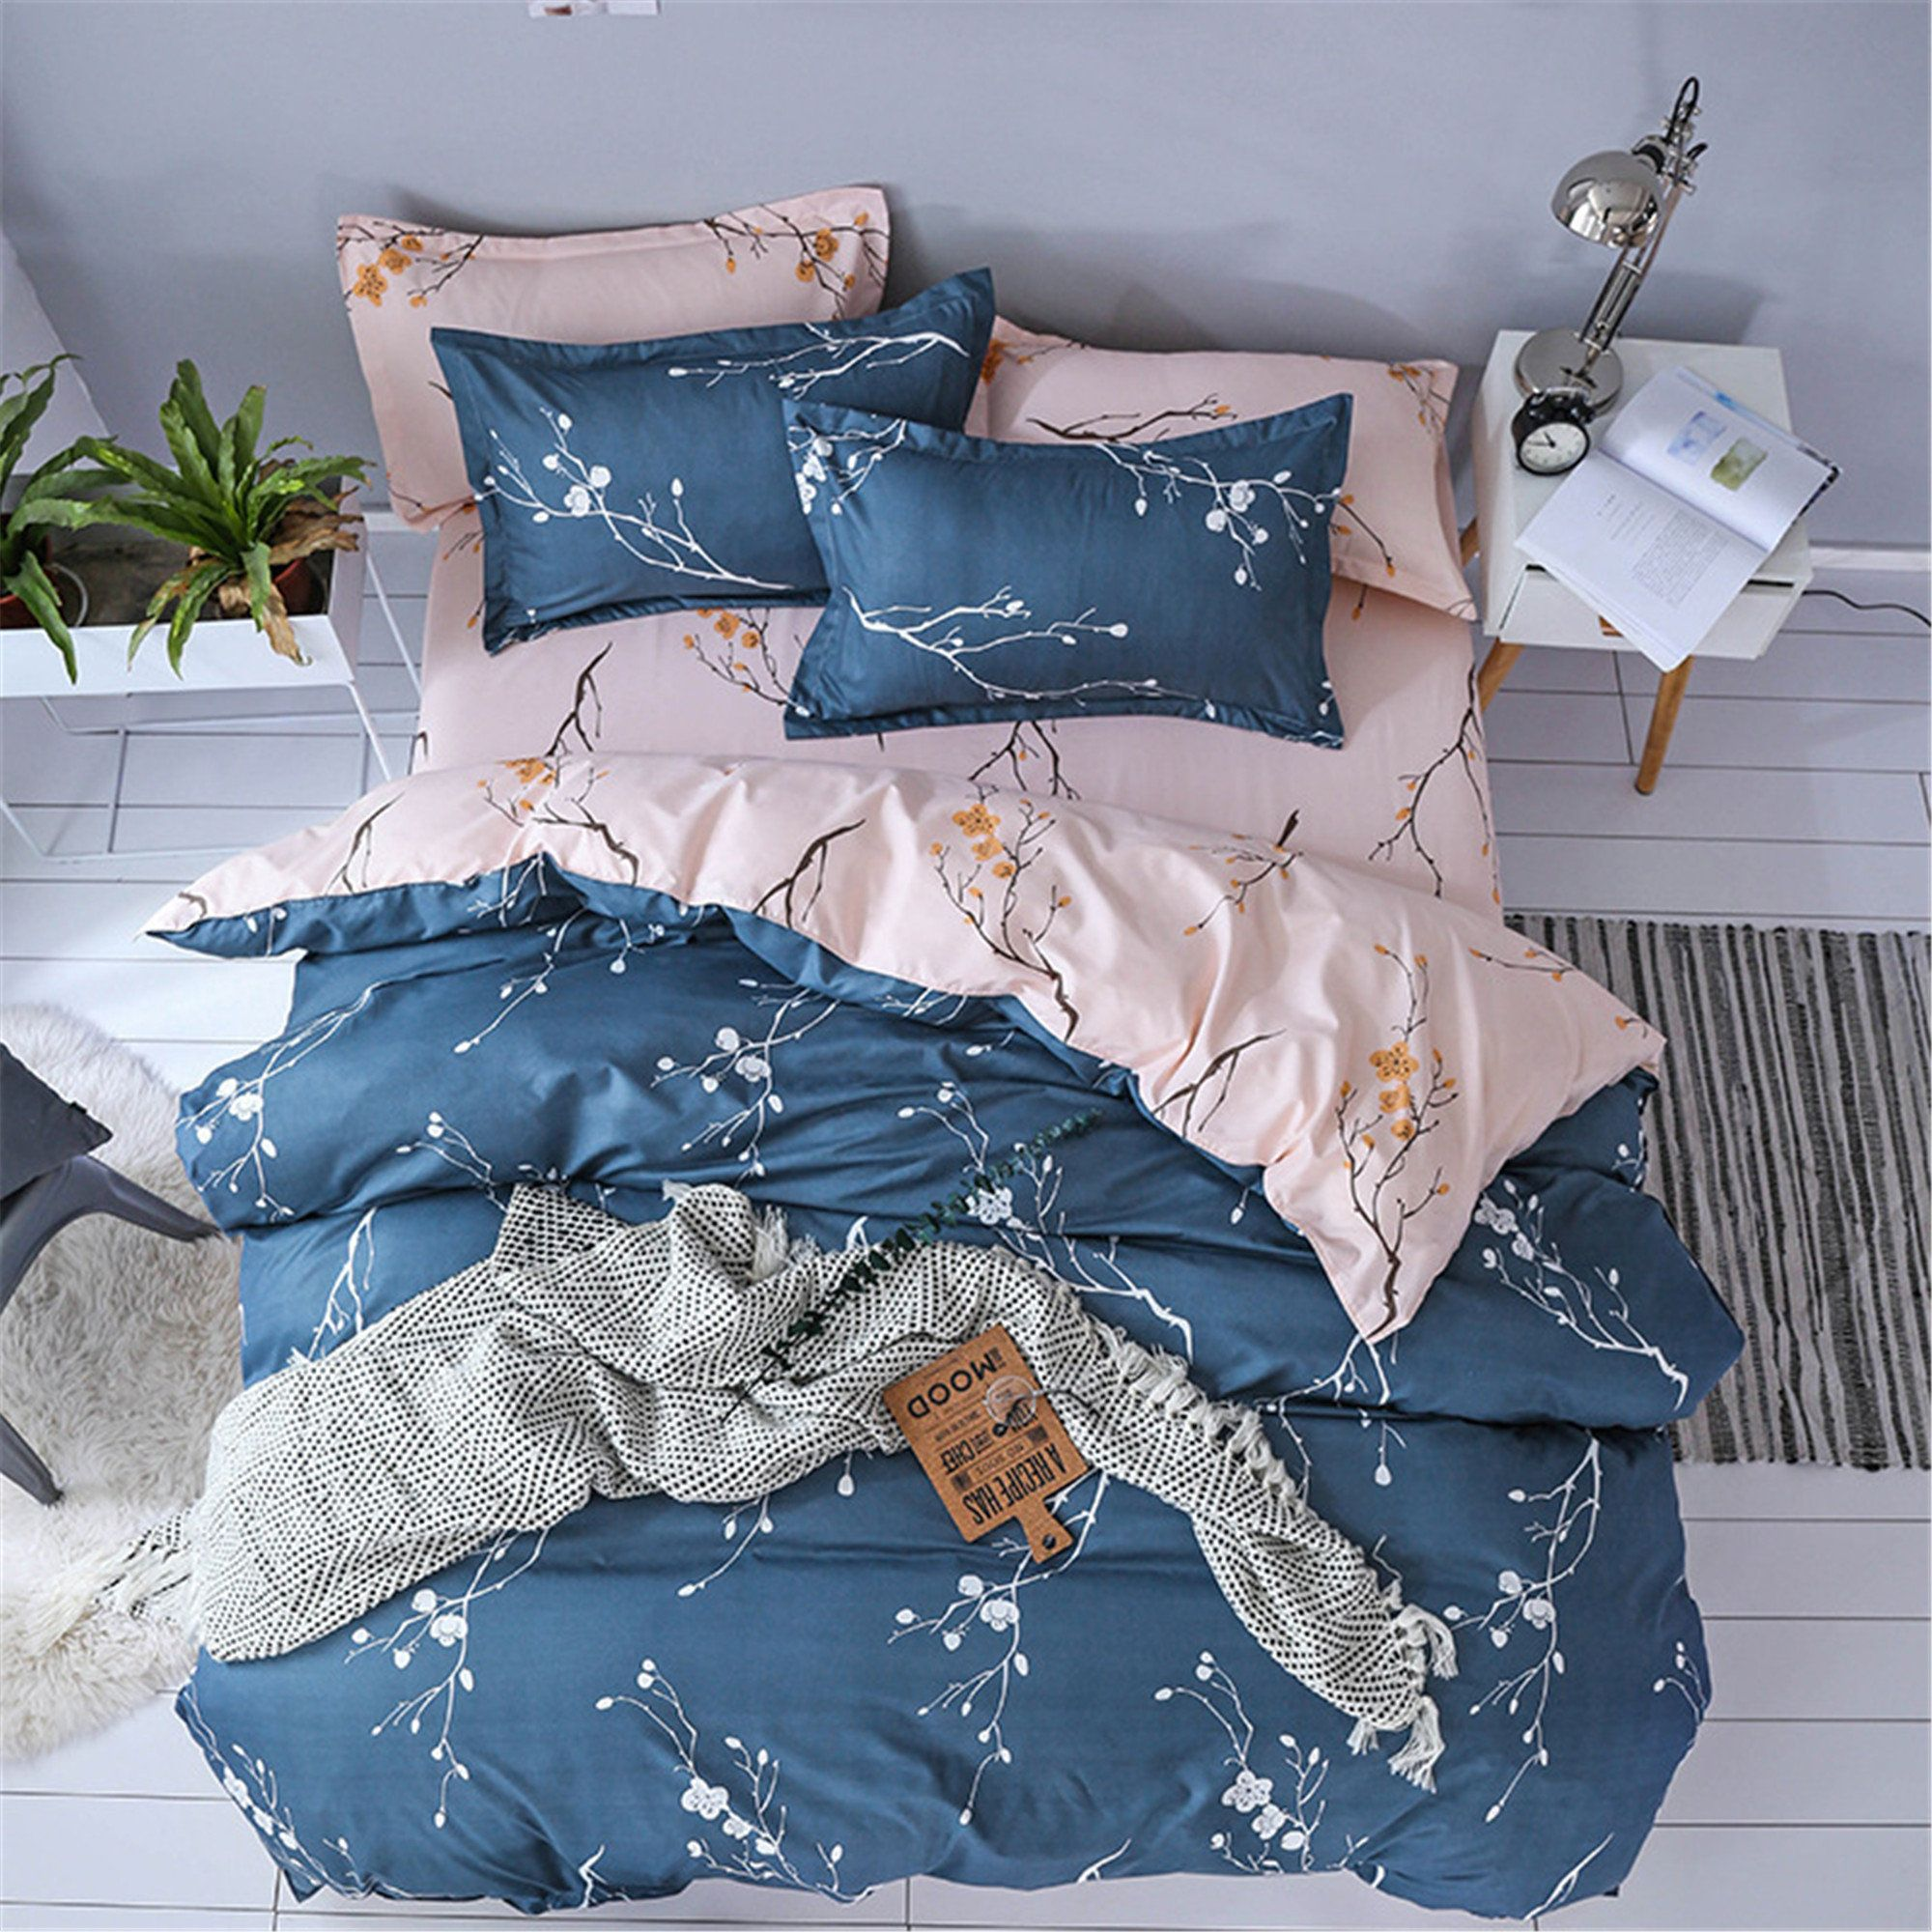 High Quality Duvet Cover Sets Super Soft Blue Microfiber Etsy Duvet Bedding Full Bedding Sets Bedding Sets